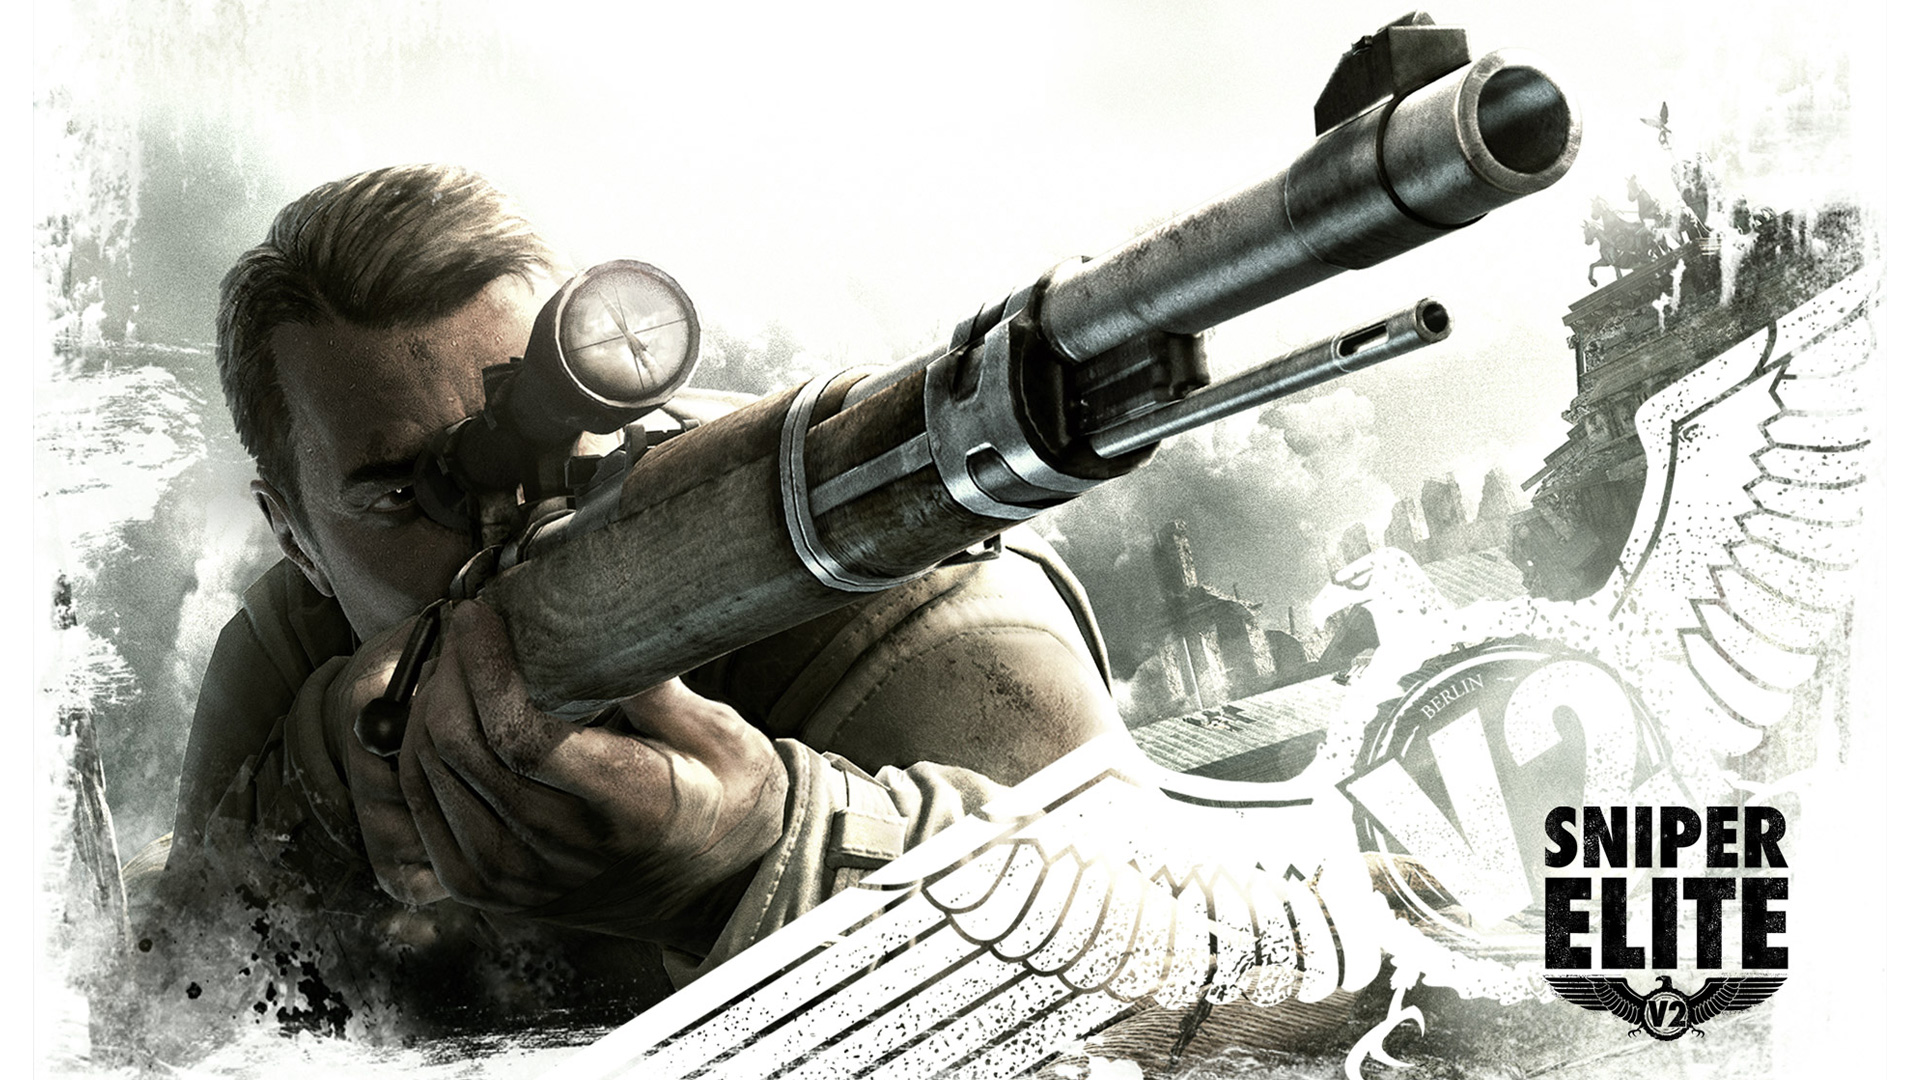 Free Sniper Elite V2 Wallpaper in 1920x1080